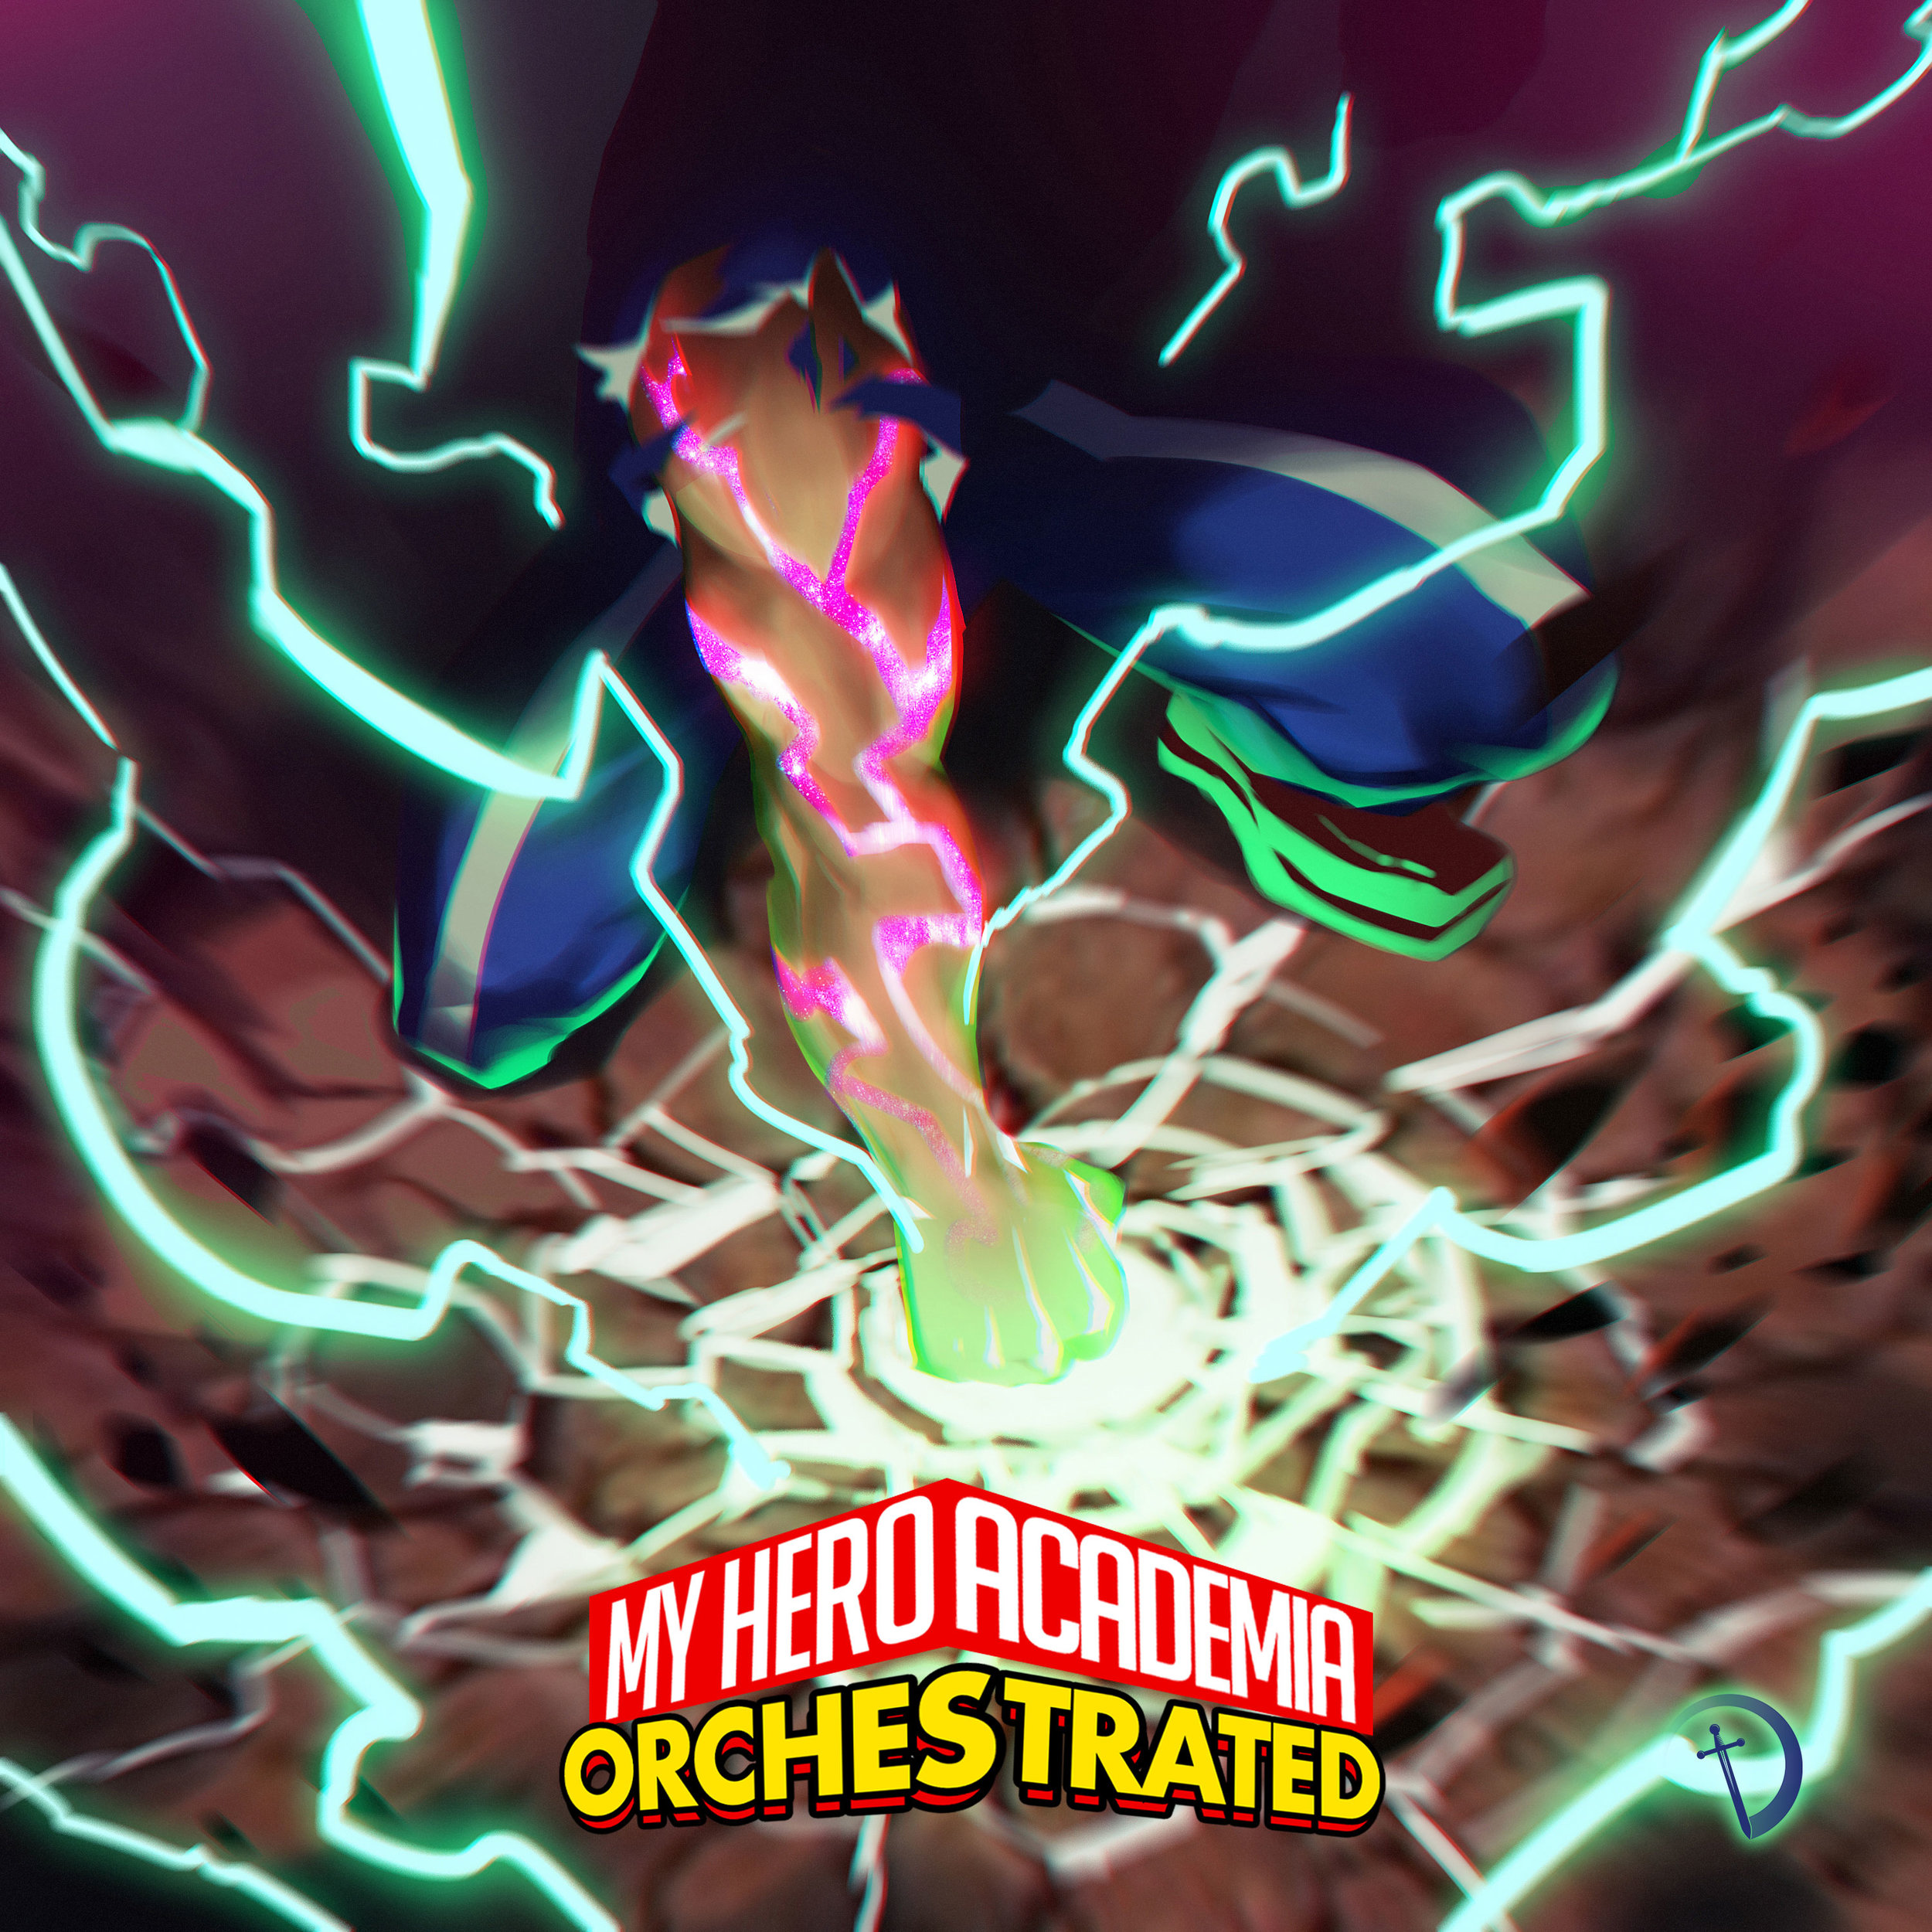 My Hero Academia Orchestrated - Relive your adventures with Deku in full cinematic, orchestral goodness. Featuring openings and a couple of extras this album is perfect for a die hard My Hero Academia fan. 'PLUS ULTRA'